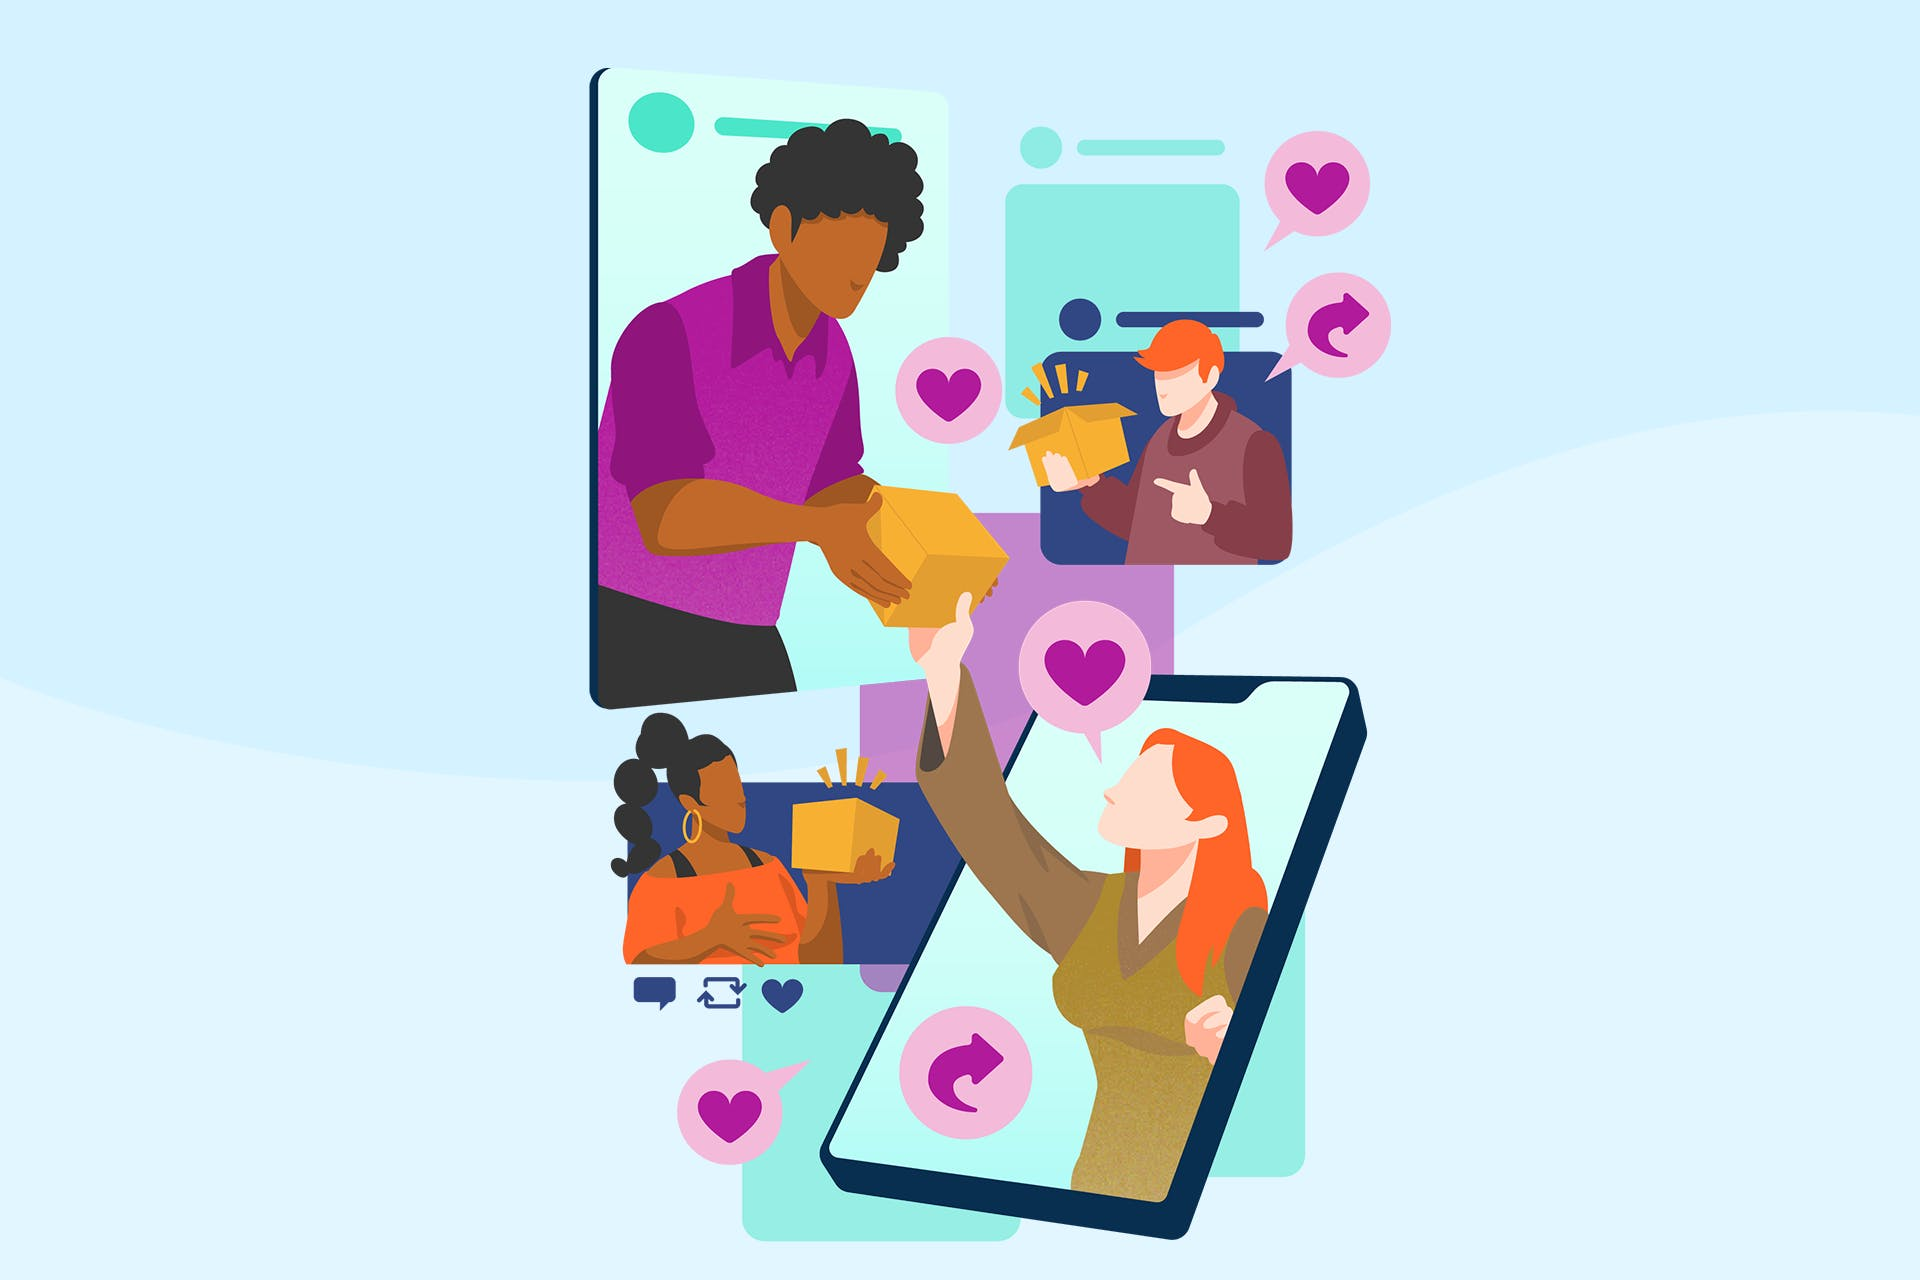 An illustration showing four people within the phone screens that are holding boxes that they are discussing with one another. These type of product reviews are referred to as user-generated content when shared through when done through social media.